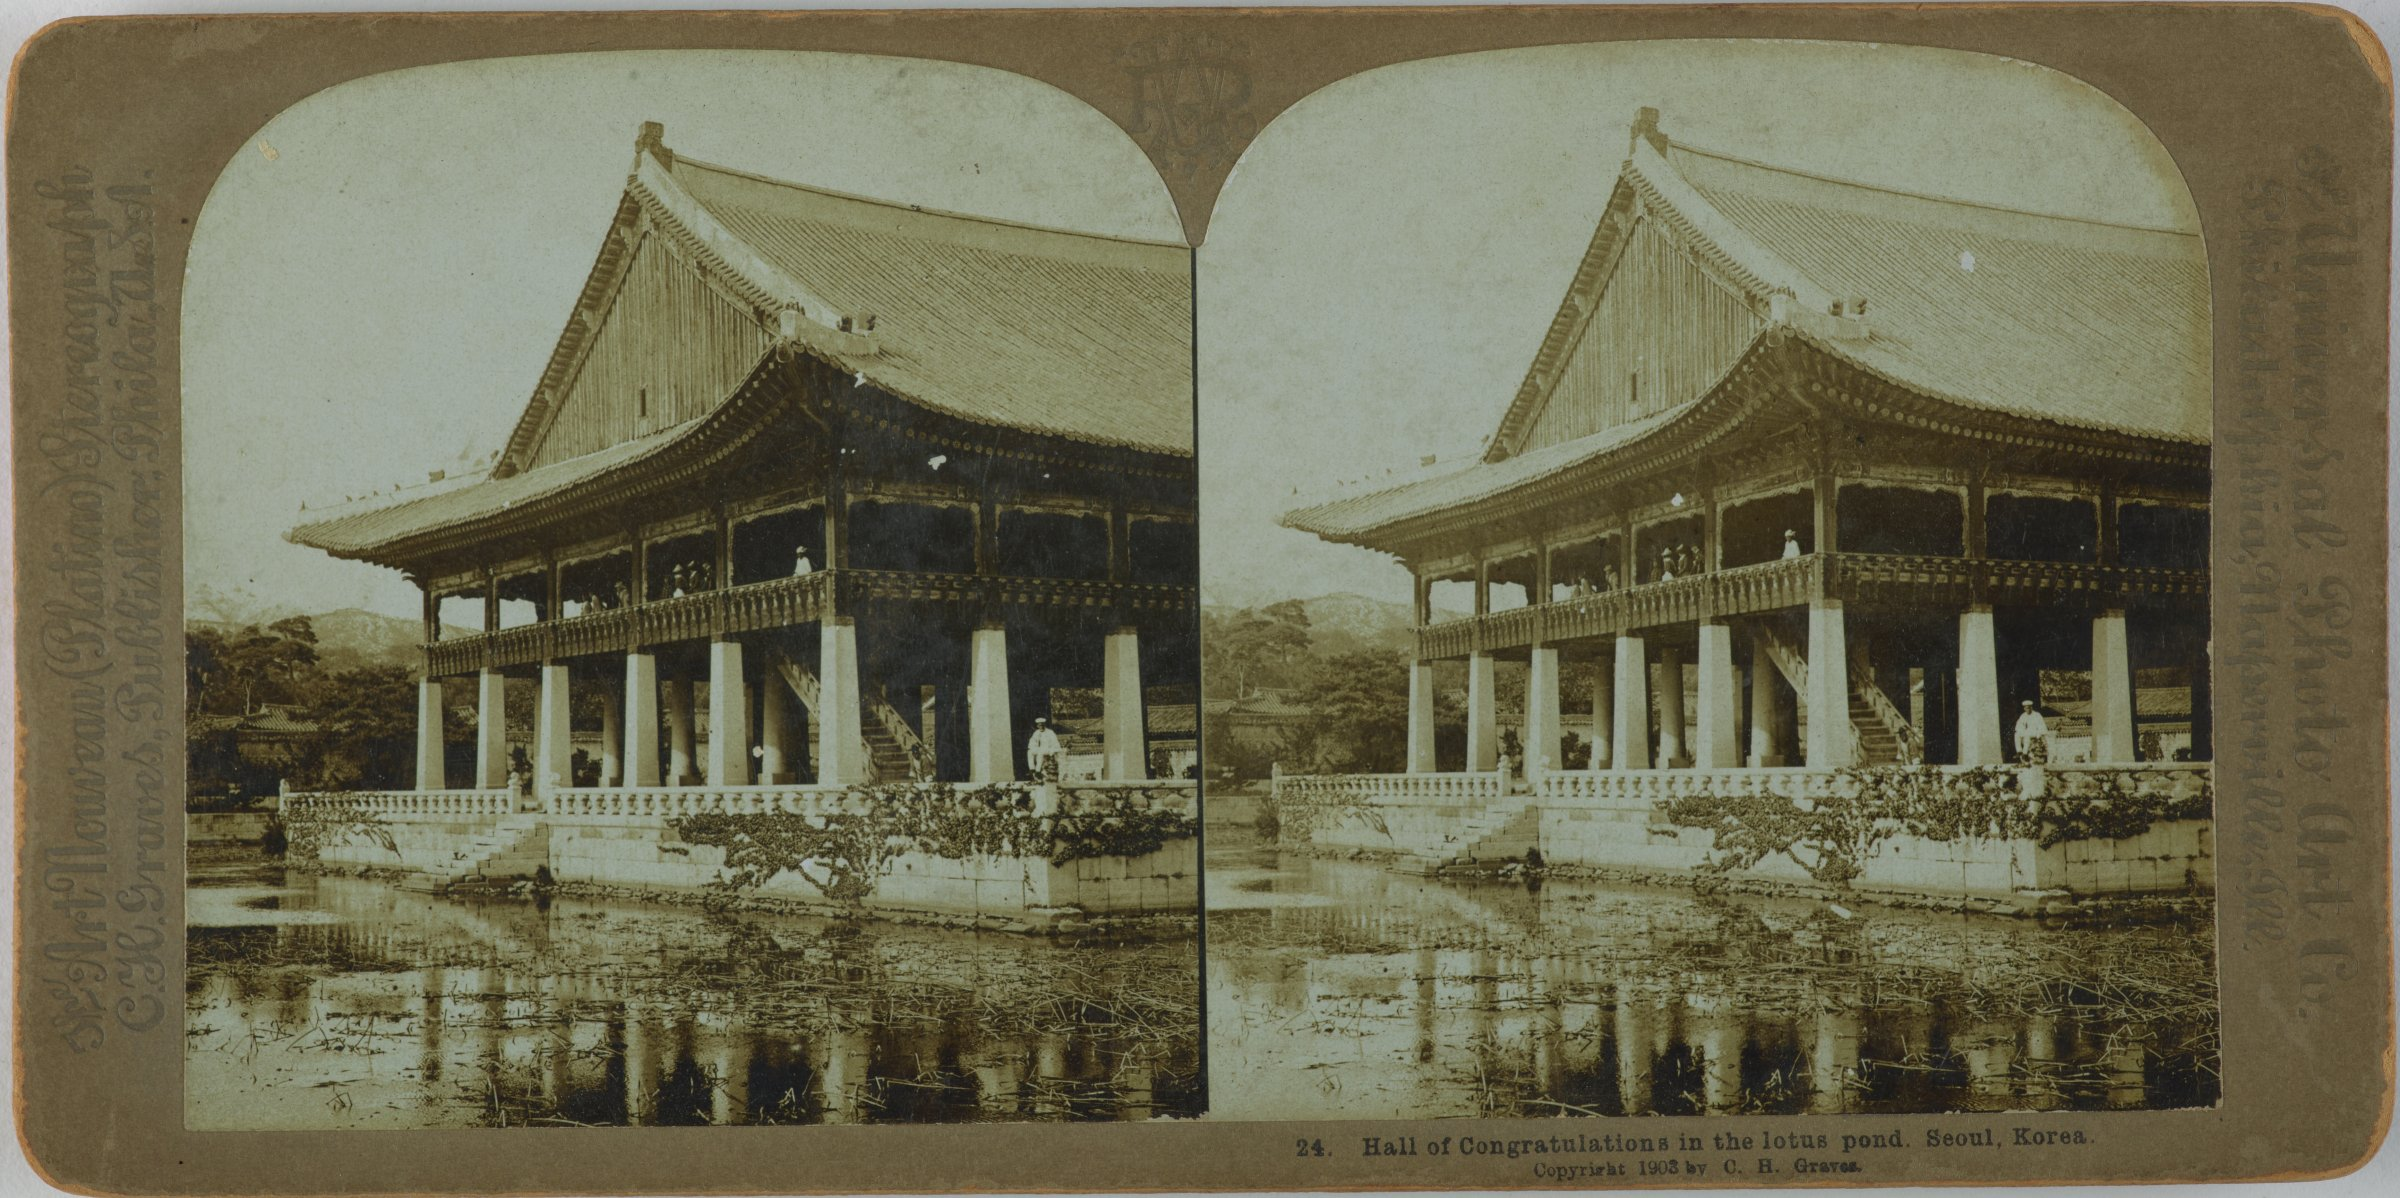 Hall of Congratulations in a Lotus Pond, Seoul, Korea, The Universal Photo Art Co., gelatin silver prints mounted on card